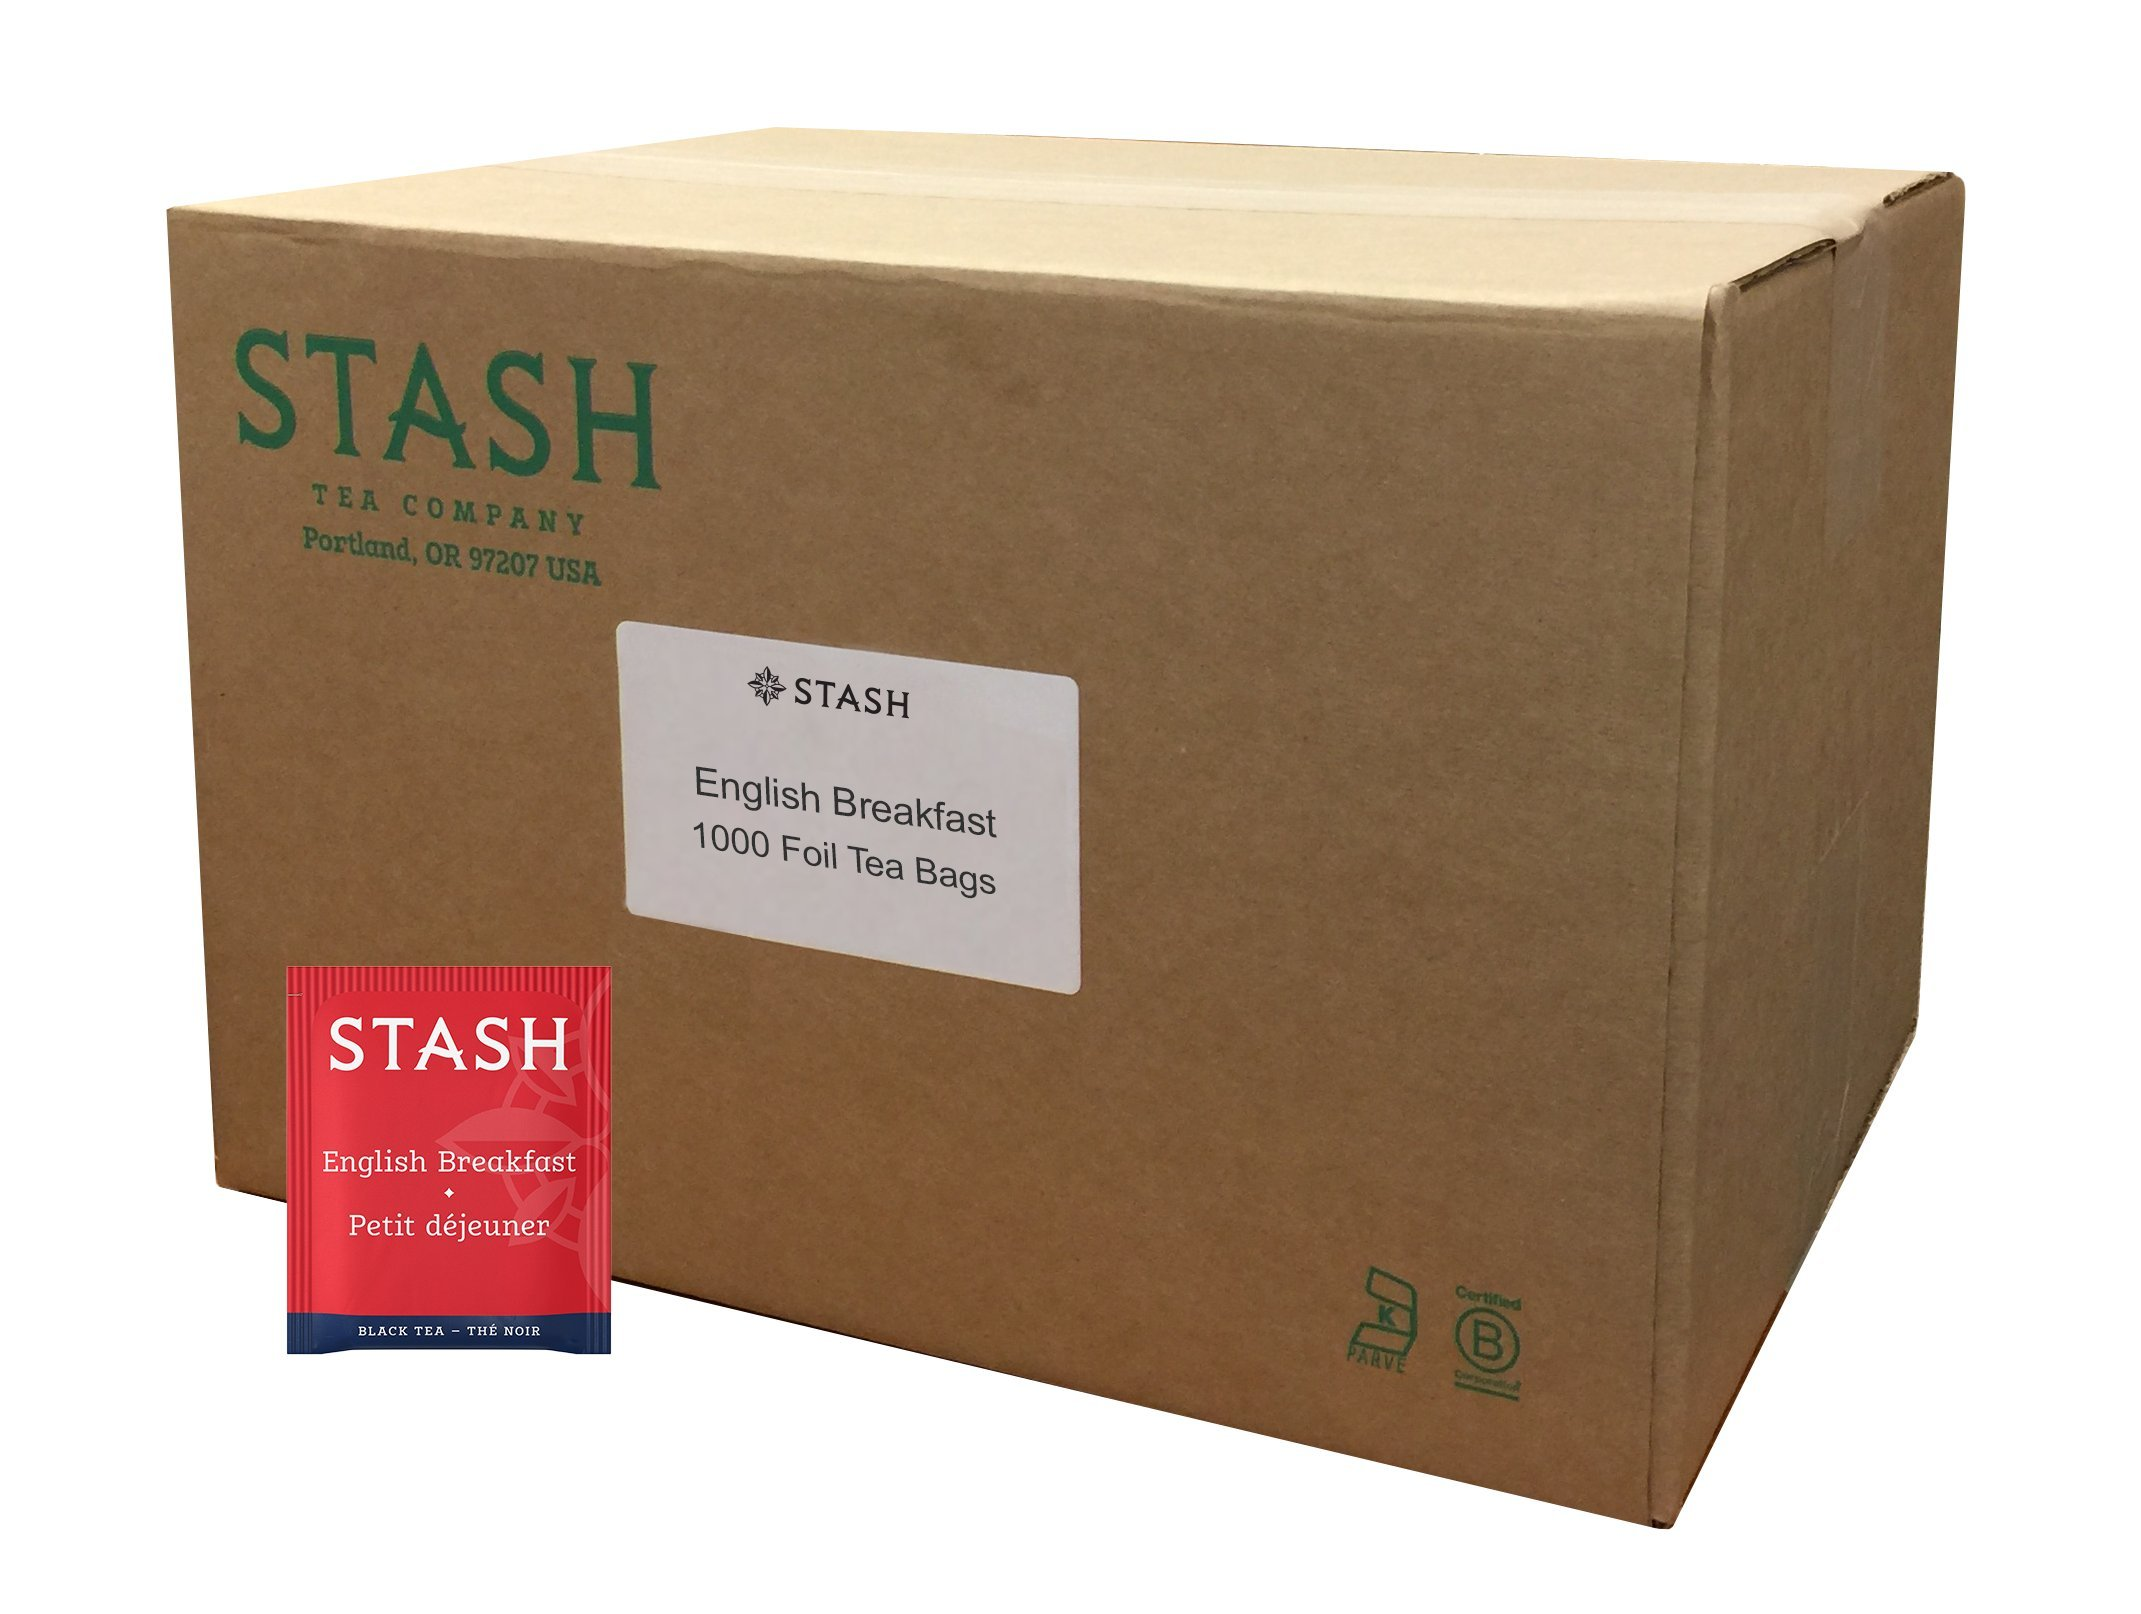 Stash Tea English Breakfast Black Tea 1000 Count Box of Tea Bags in Foil by Stash Tea